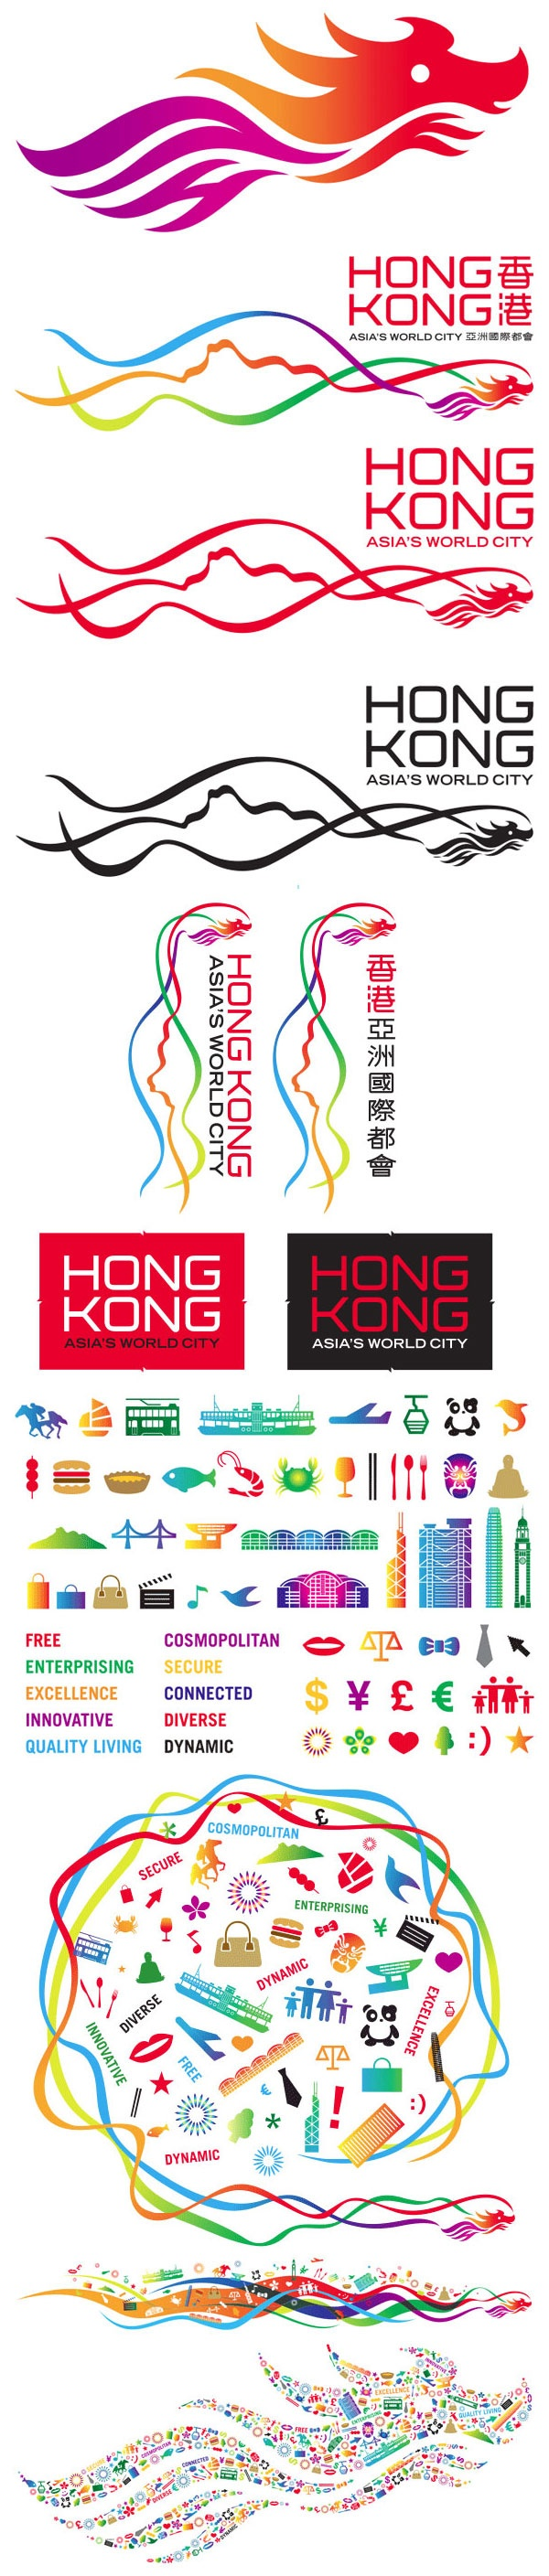 Identity for Brand Hong Kong (BHK) by Landor #city_brand 2010